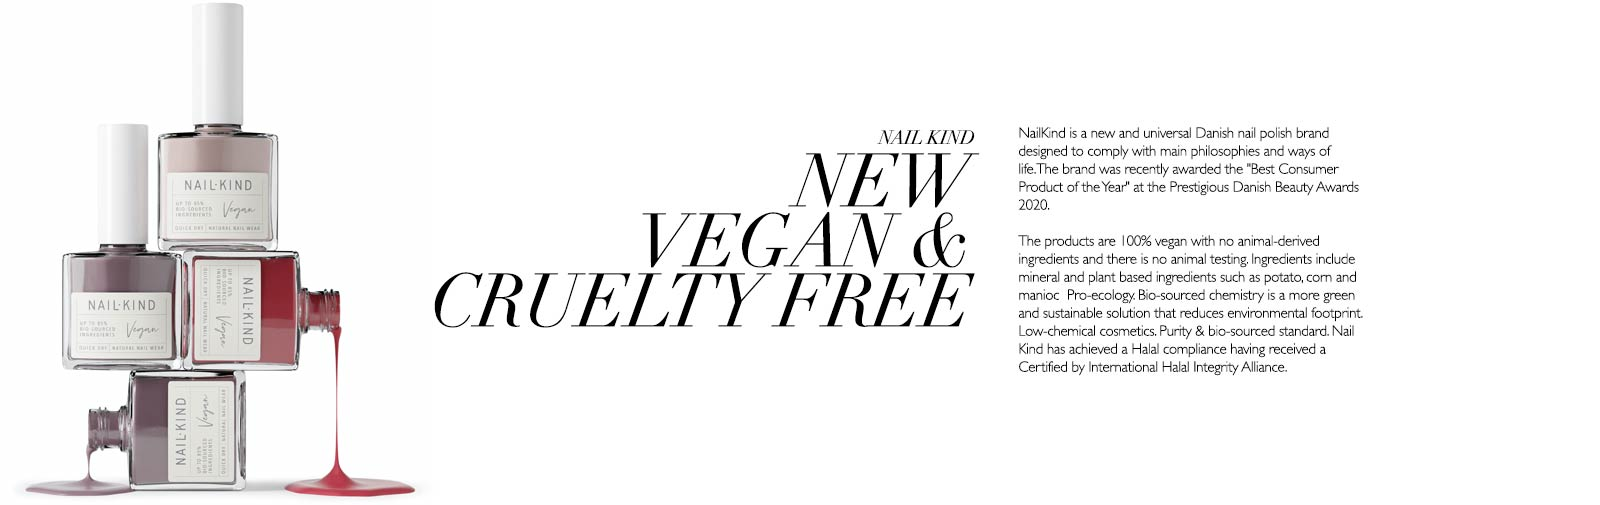 NAIL KIND - NEW VEGAN & CRUELTY FREE - Nail Kind is a new and universal Danish nail polish brand designed to comply with main philosophies and ways of life. The brand was recently awarded the 'Best Consumer Product of the Year' at the Prestigious Danish Beauty Awards 2020.  The products are 100% vegan with no animal-derived ingredients and there is no animal testing. Ingredients include mineral and plant based ingredients such as potato, corn and manioc. Pro-ecology. Bio-sourced chemistry is a more green and sustainable solution that reduces environmental footprint. Low-chemical cosmetics. Purity & bio-sourced standard. Nail Kind has achieved a Halal compliance having received a Certified by International Halal Integrity Alliance.